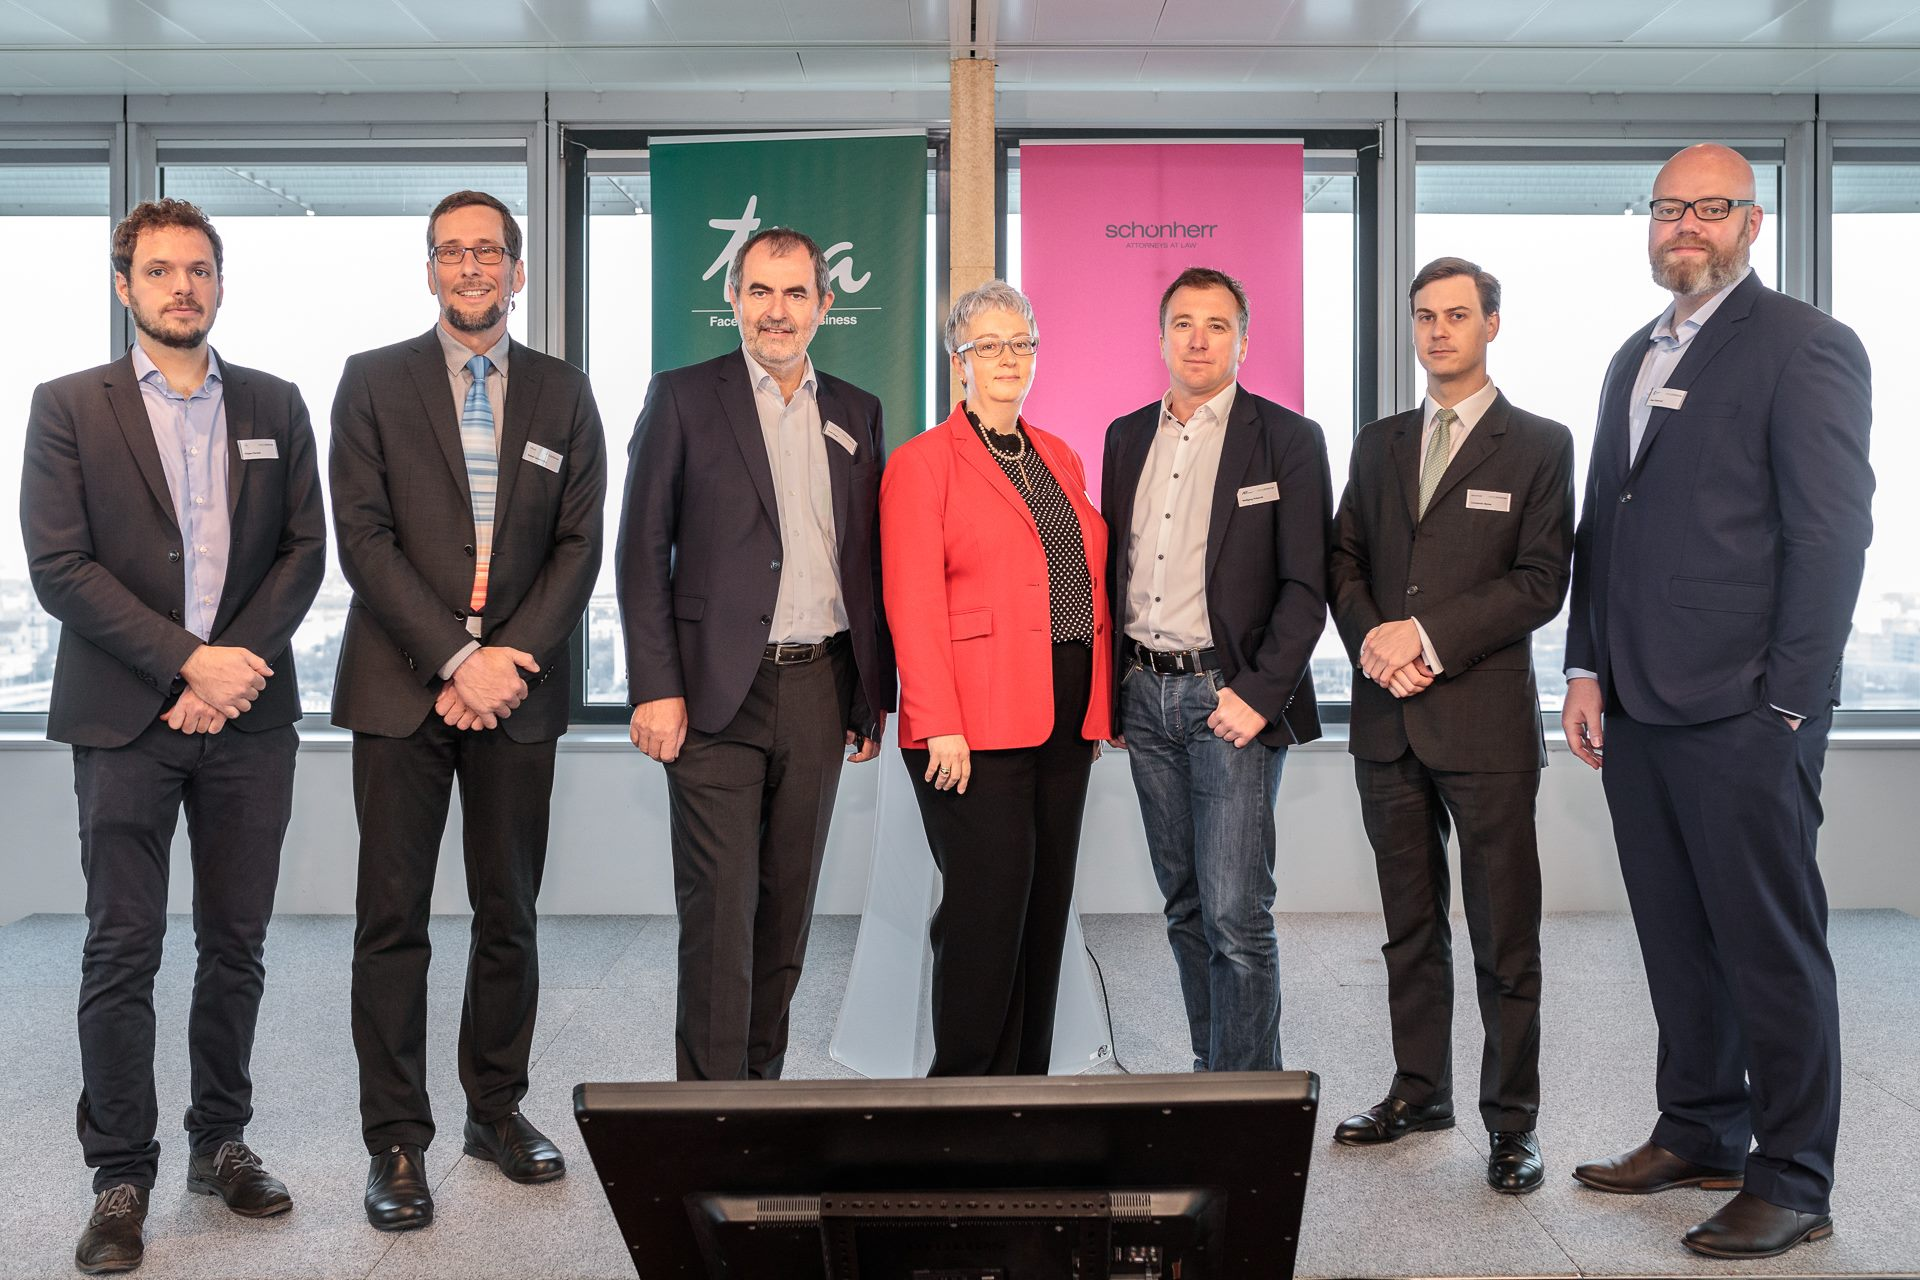 Speaker der 8. Energy Tomorrow 2019: Filippo Ferraris of Enerbrain, Volker Quaschning, Josef Plank of BM Sustainability & Tourism, Karin Fuhrmann from TPA, Wolfgang Hribernik from AIT, Constantin Benes from Schoenherr Laywers and Peter Balschek from W&Kreisel Group Foto: Alexander Müller